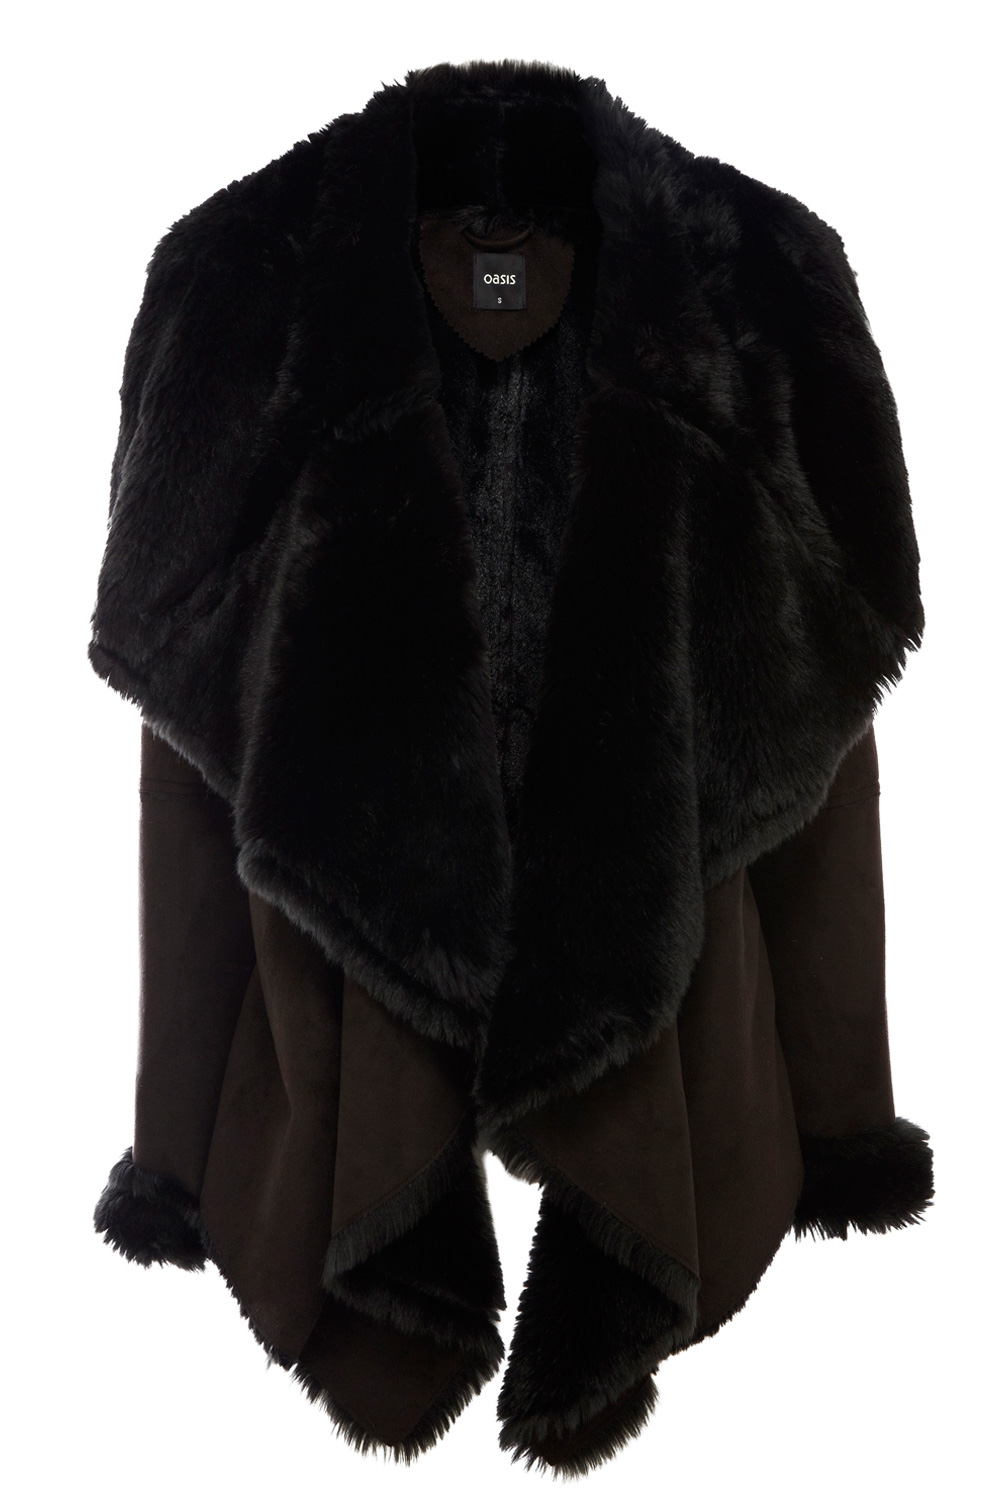 Faux Shearling Drape Jacket | Black | Oasis Stores